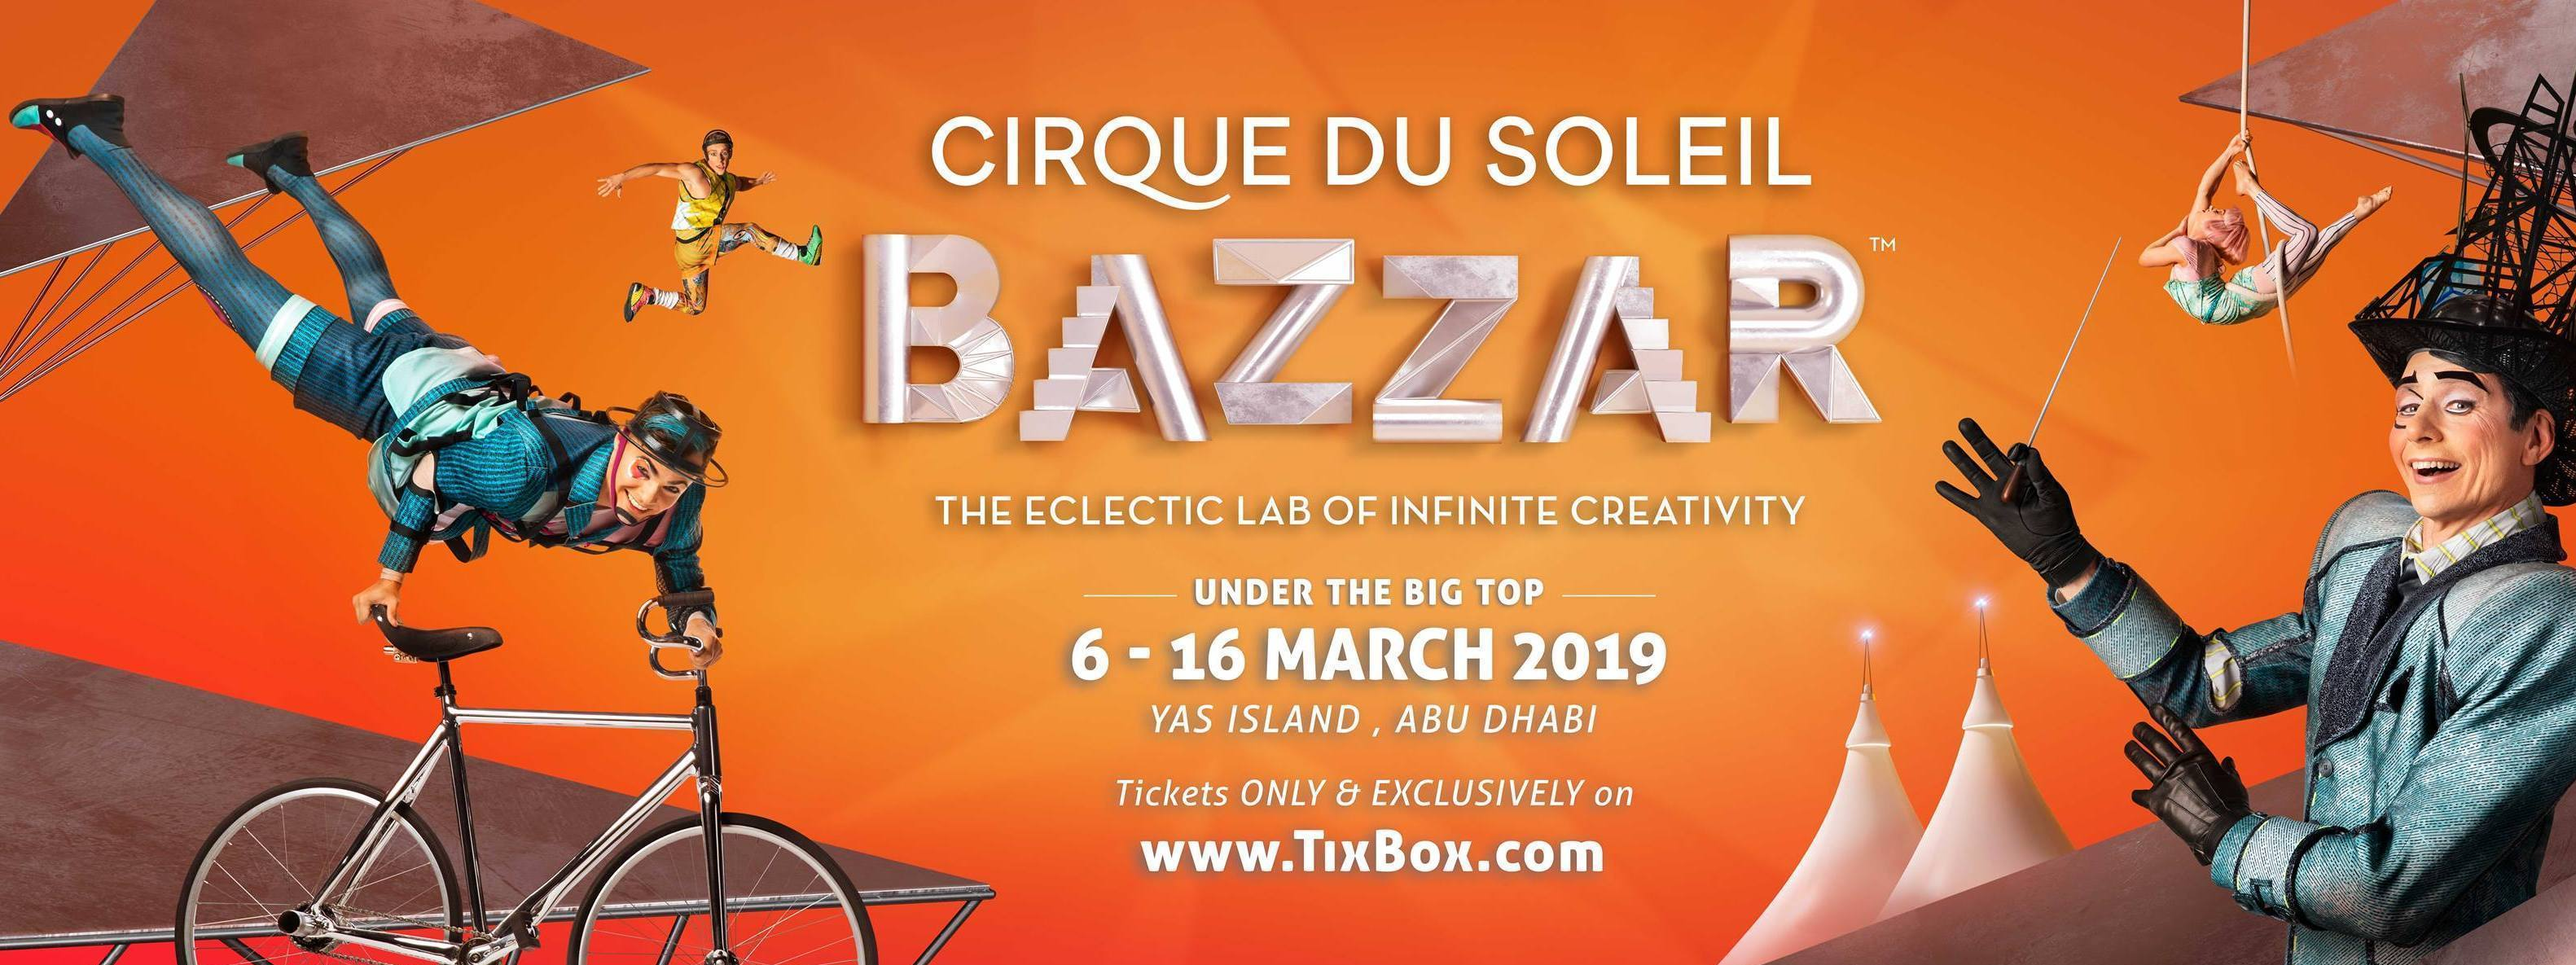 Cirque du Soleil BAZZAR at Yas Island - Coming Soon in UAE